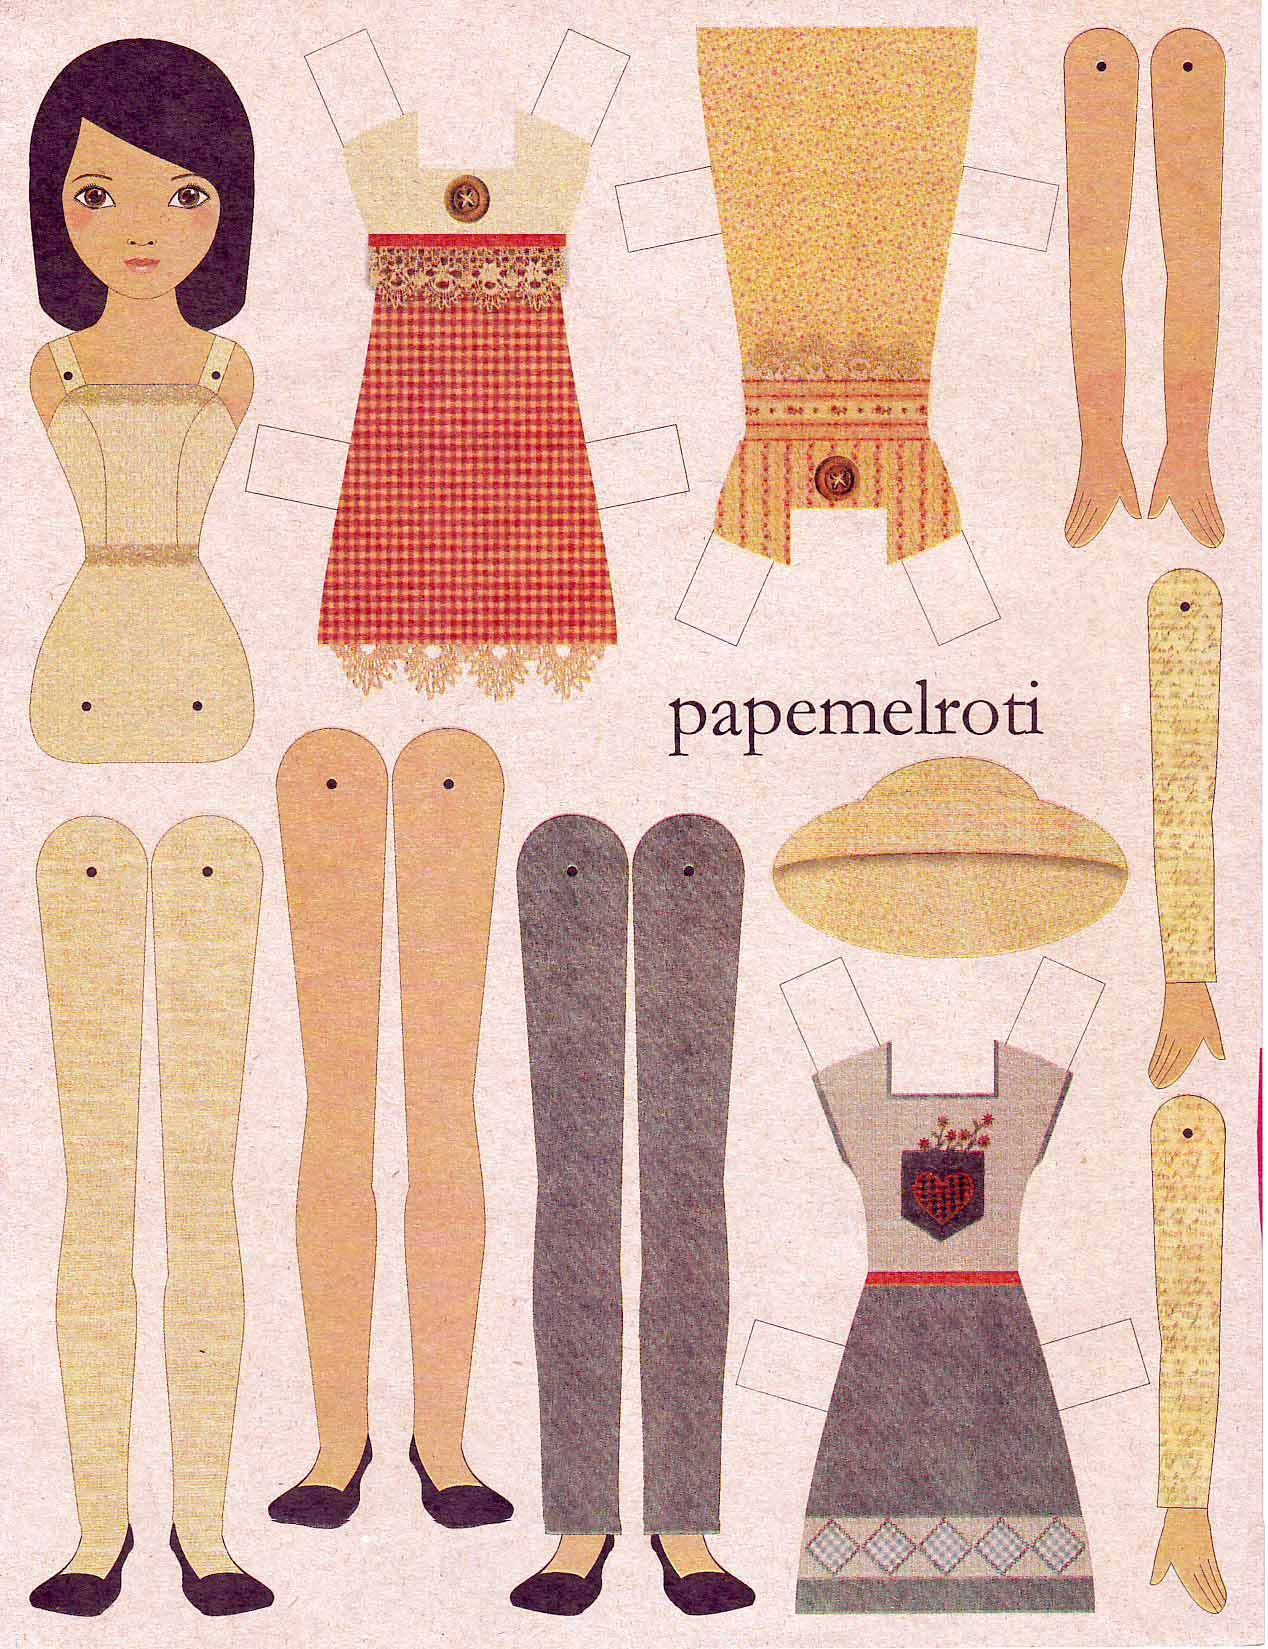 ... paper dolls, I'd choose the latter. Papemelroti paper doll, P15 each